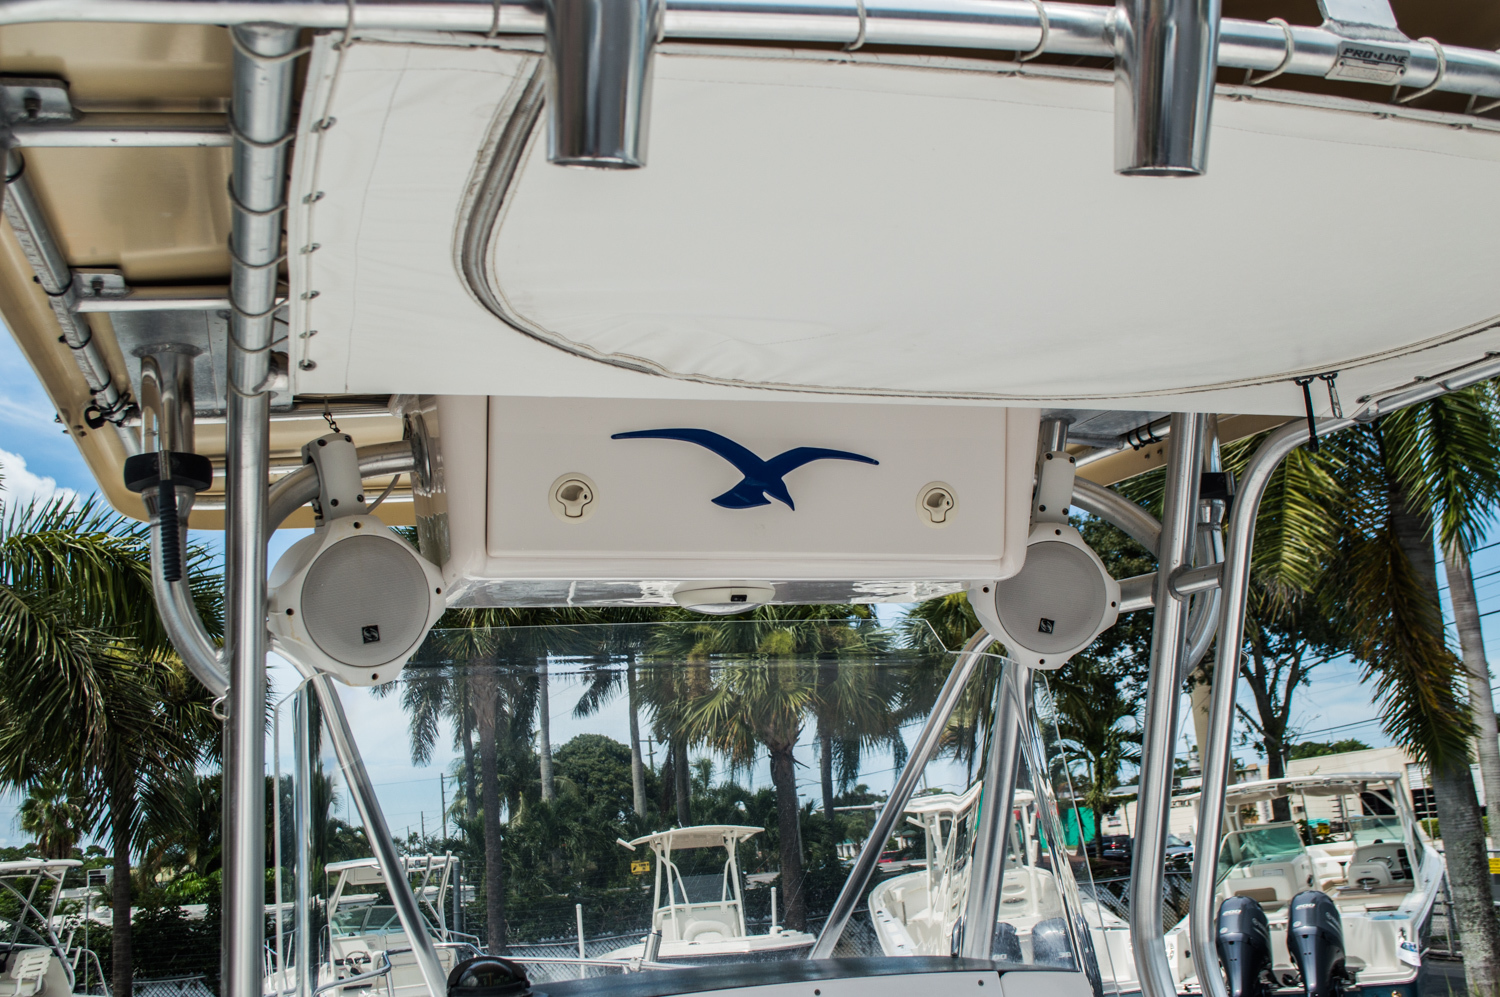 Thumbnail 23 for Used 2004 Pro-Line 25 Sport boat for sale in West Palm Beach, FL